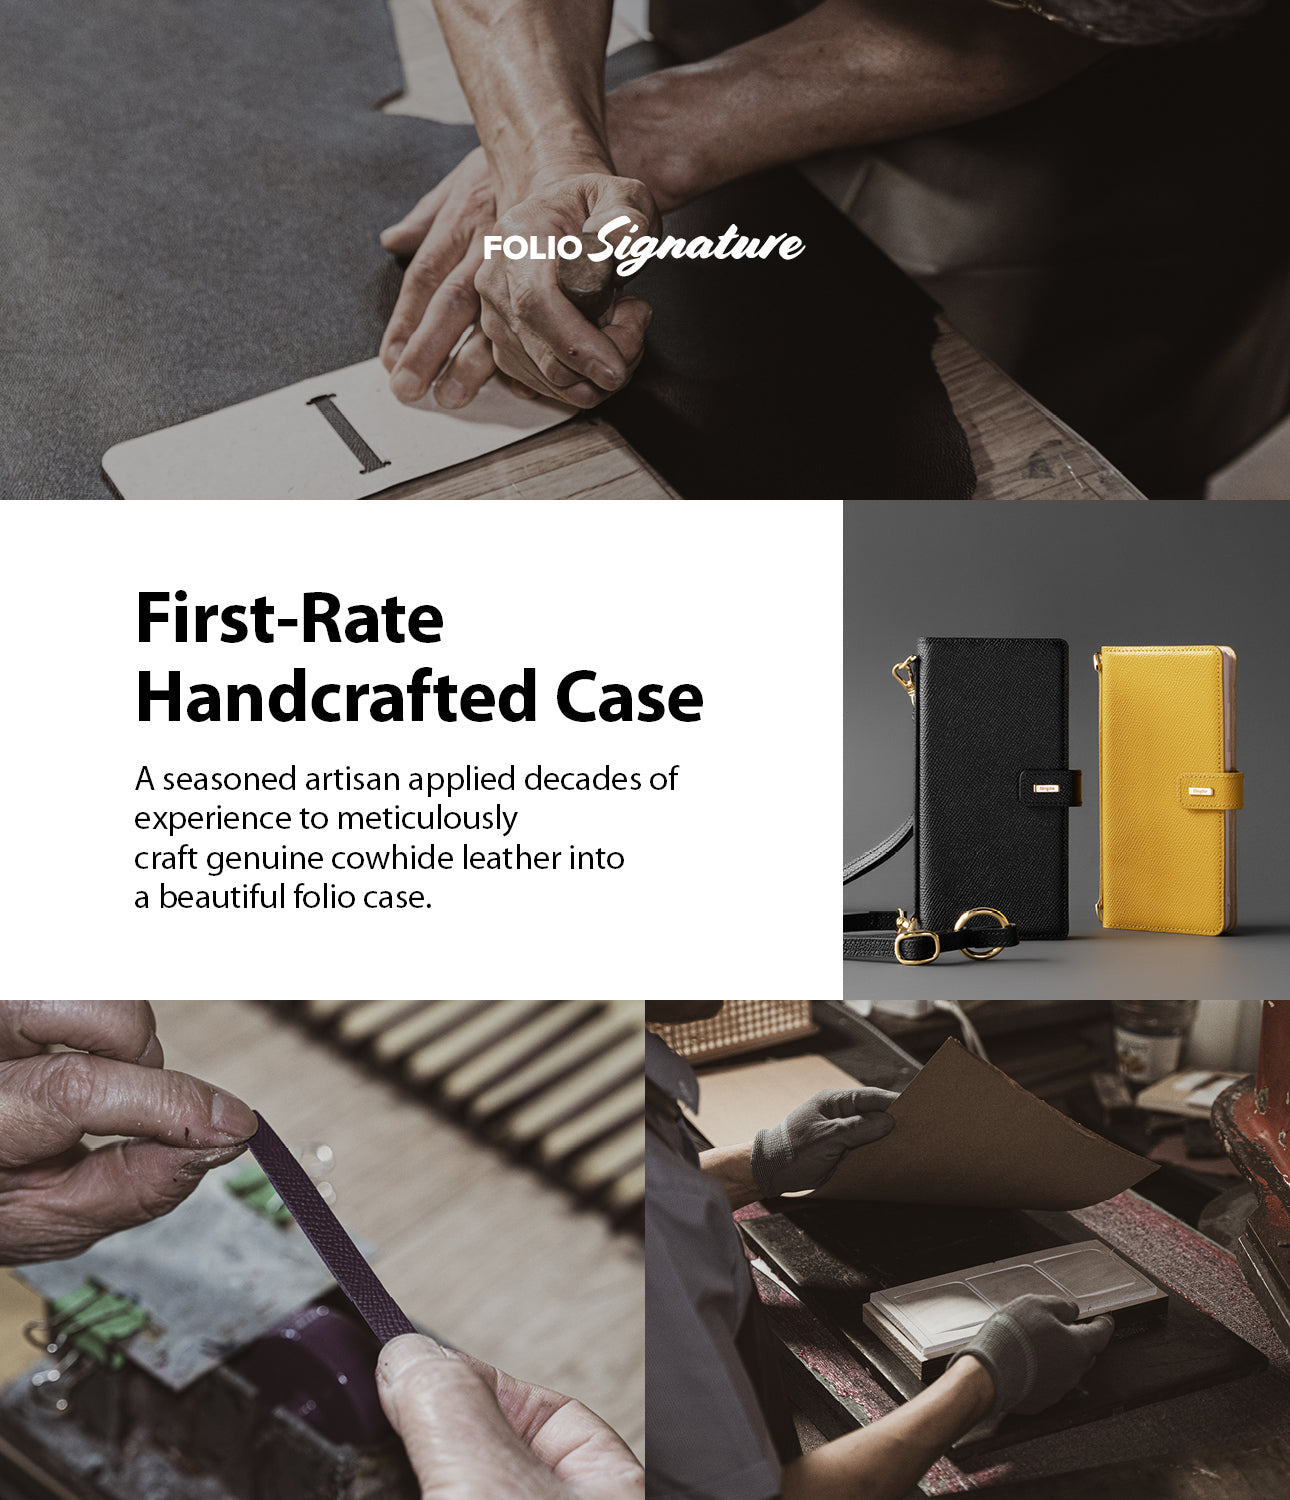 first-rate handcrafted case - a seasoned artisan applied decades of experience to meticulously craft genuine cowhide leather into a beautiful folio case